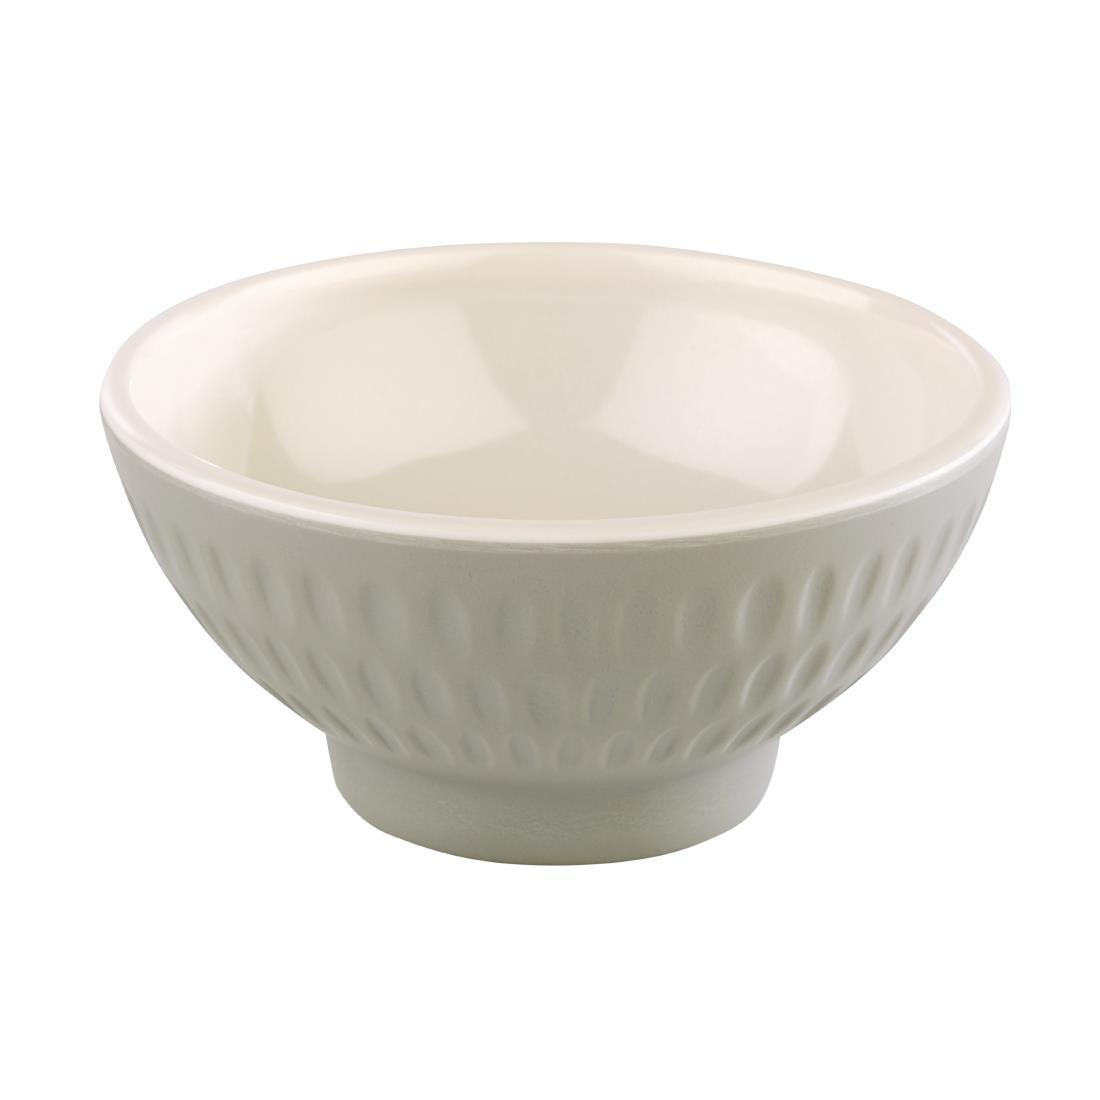 DW008 - APS Asia+ Bowl Cream 325mm - Each - DW008